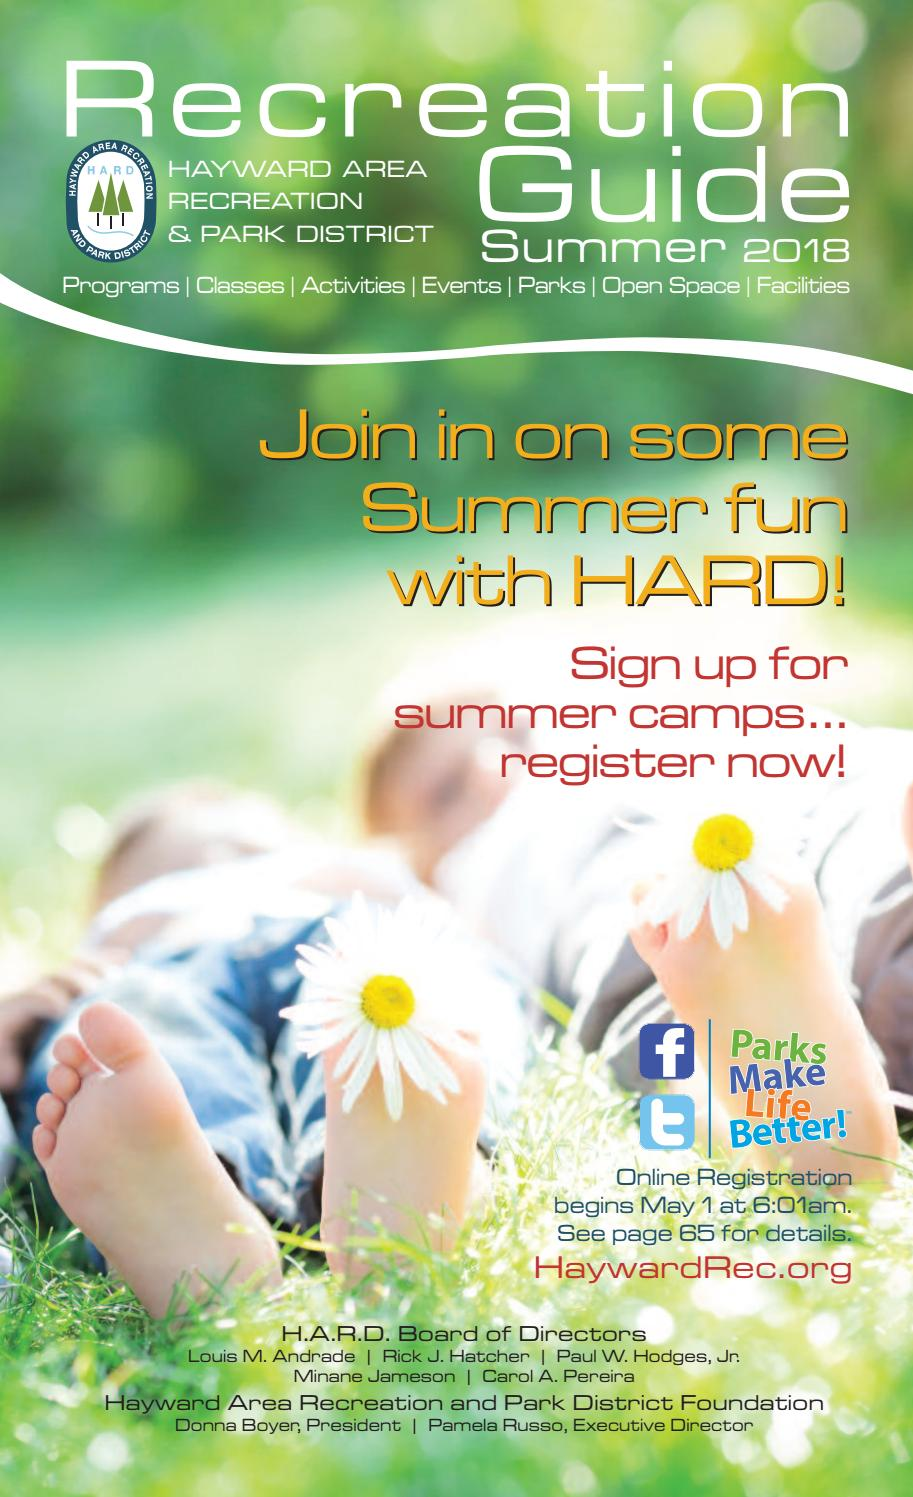 Hayward Recreation and Park District Guide Summer 2018 by Nicole Roa